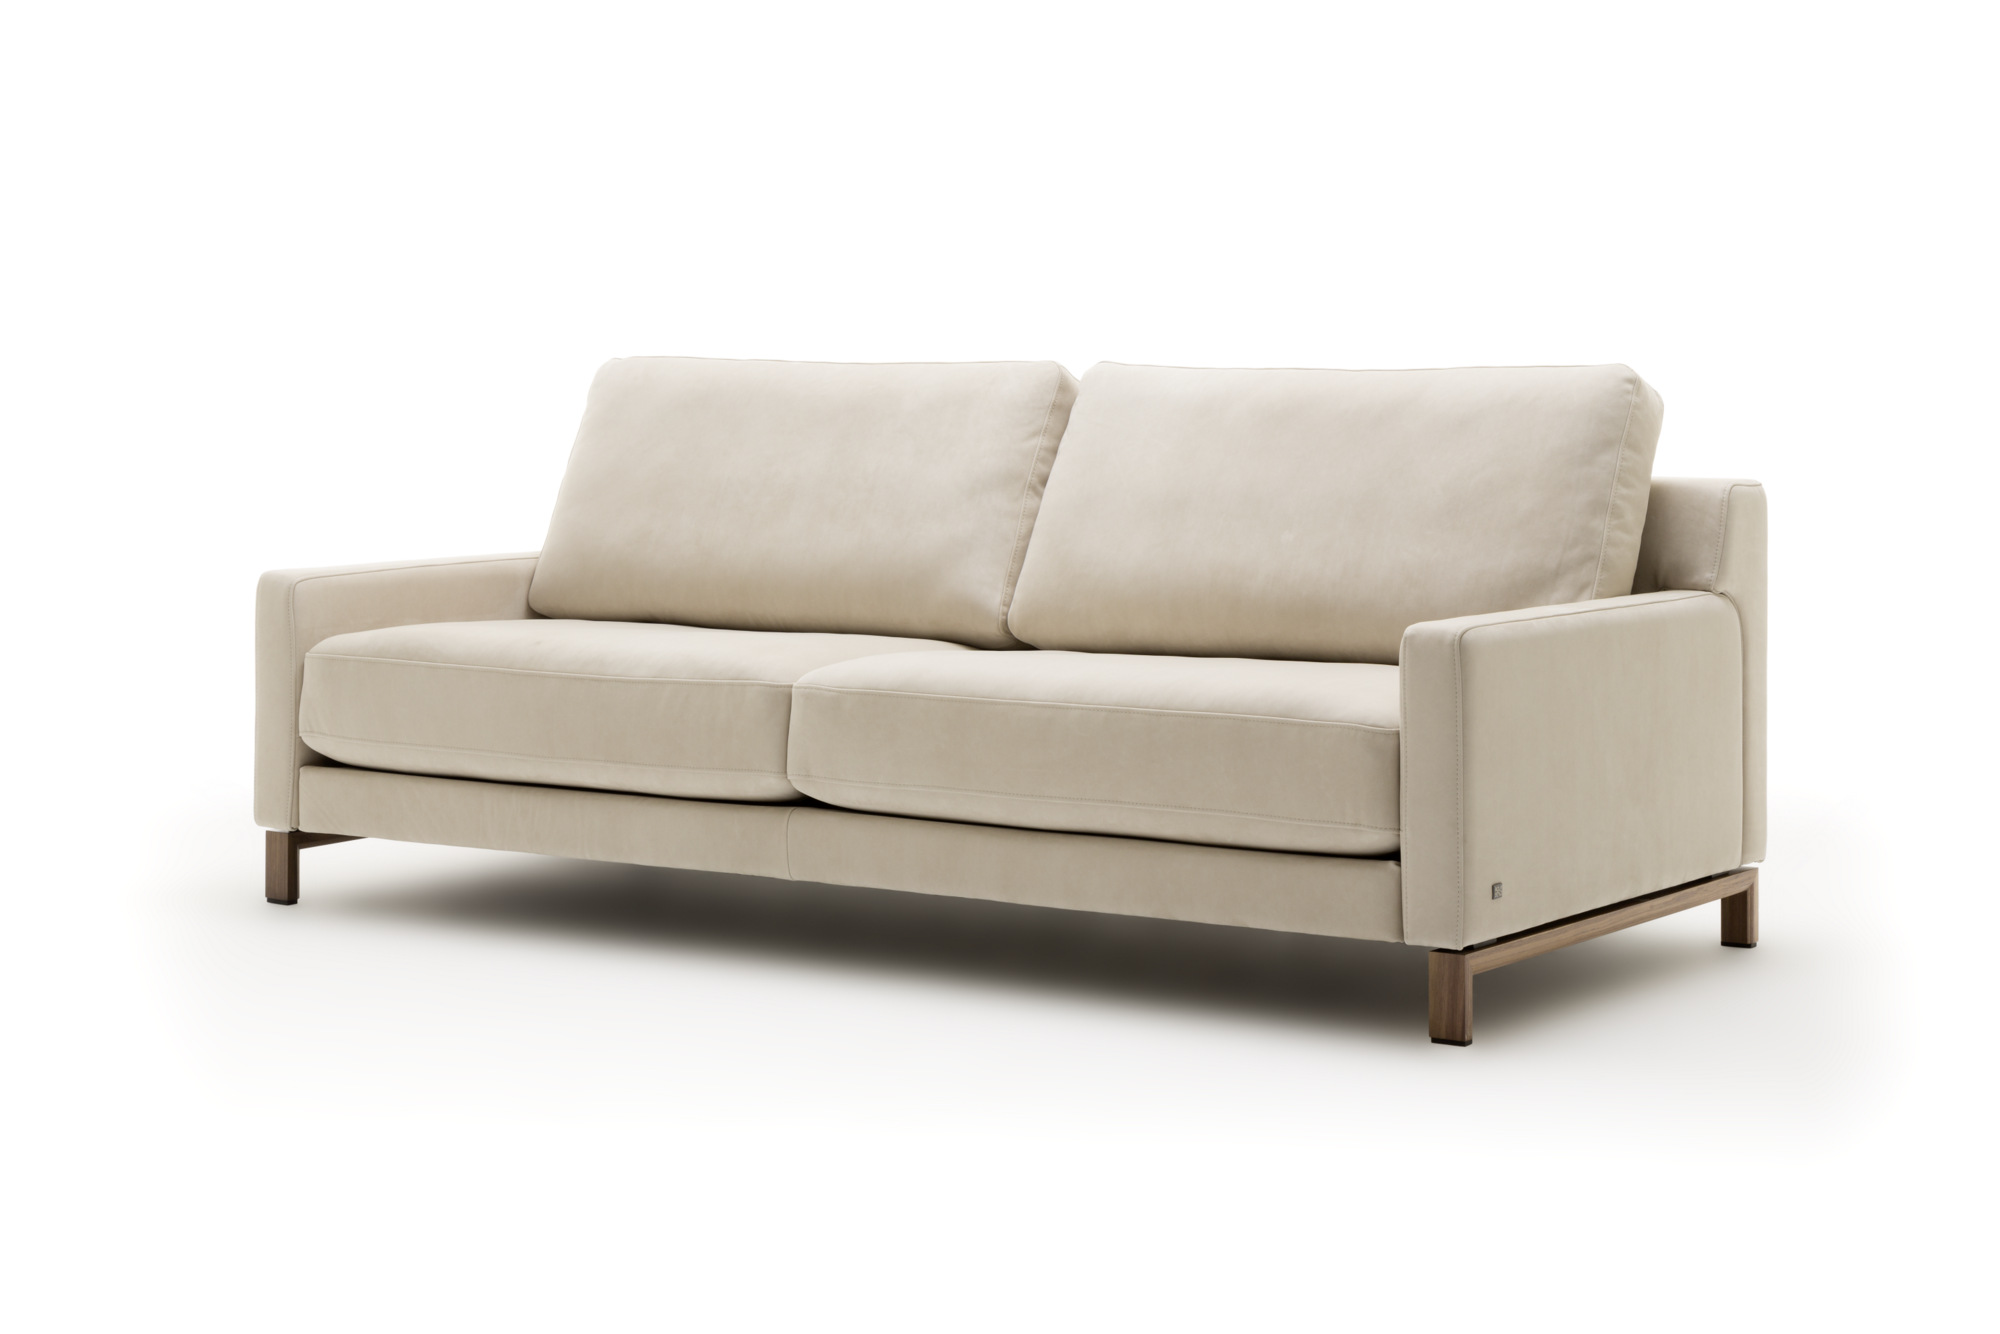 Rolf Benz Sofa Reinigen Ego Leather Sofa Ego Collection By Rolf Benz Design